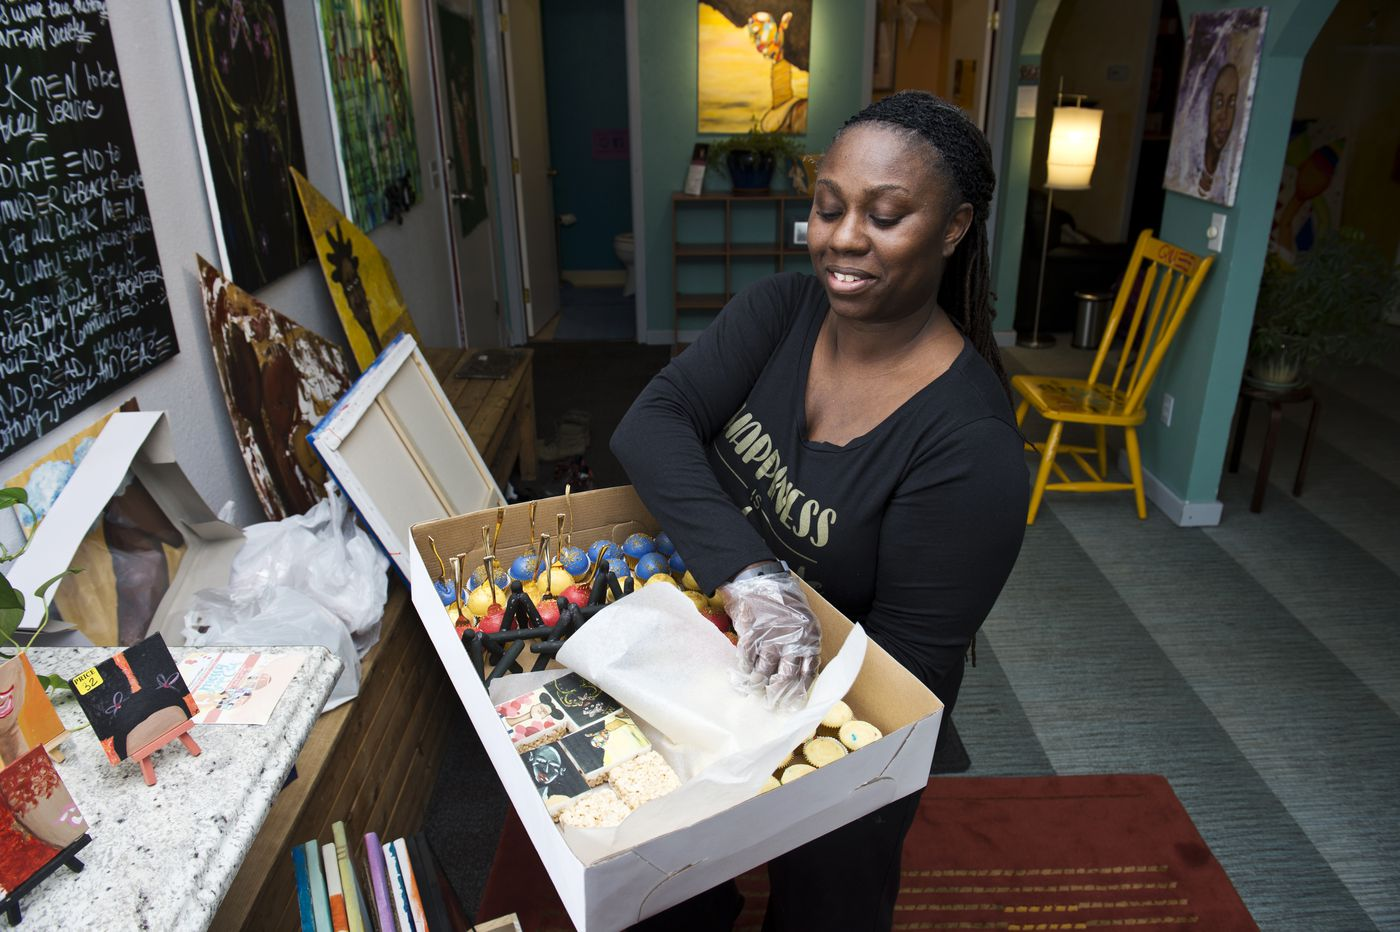 LaTasha McKnight carries a box of cake pops and other desserts she prepared for an art opening.  (Marc Lester / ADN)